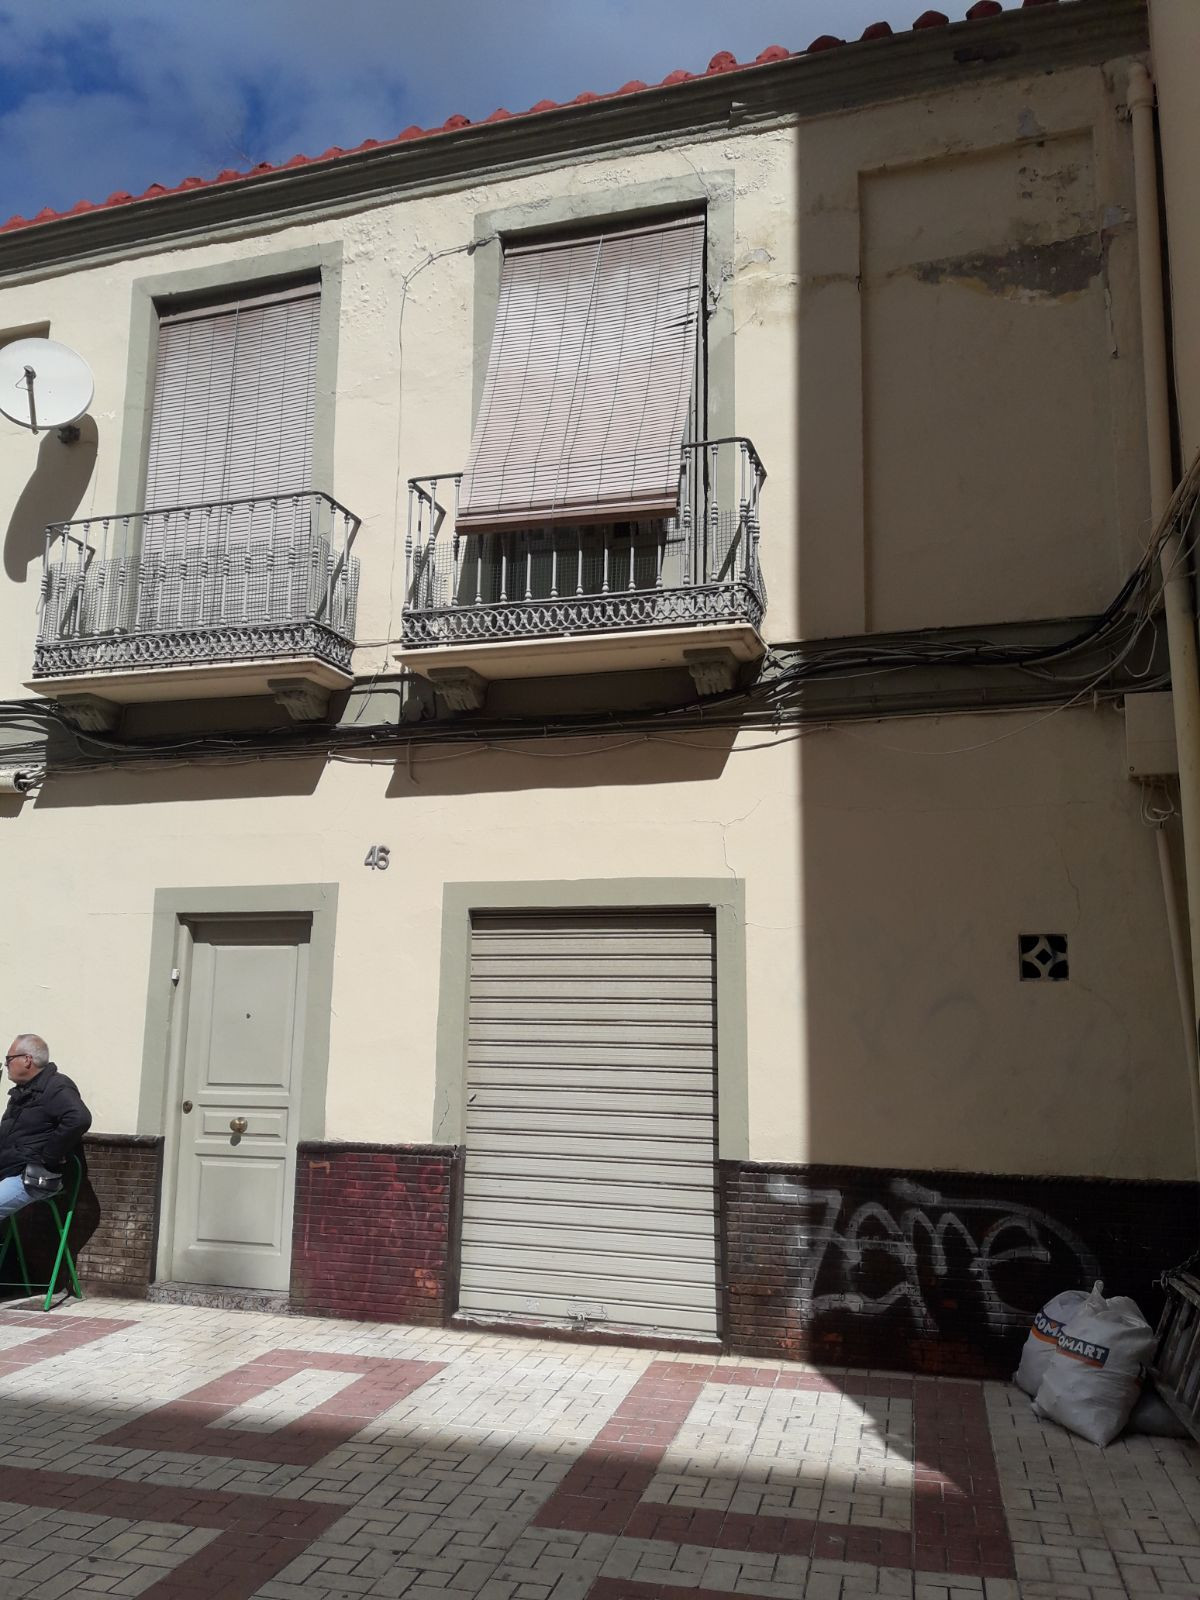 0-bed-Residential Plot for Sale in Malaga Centro